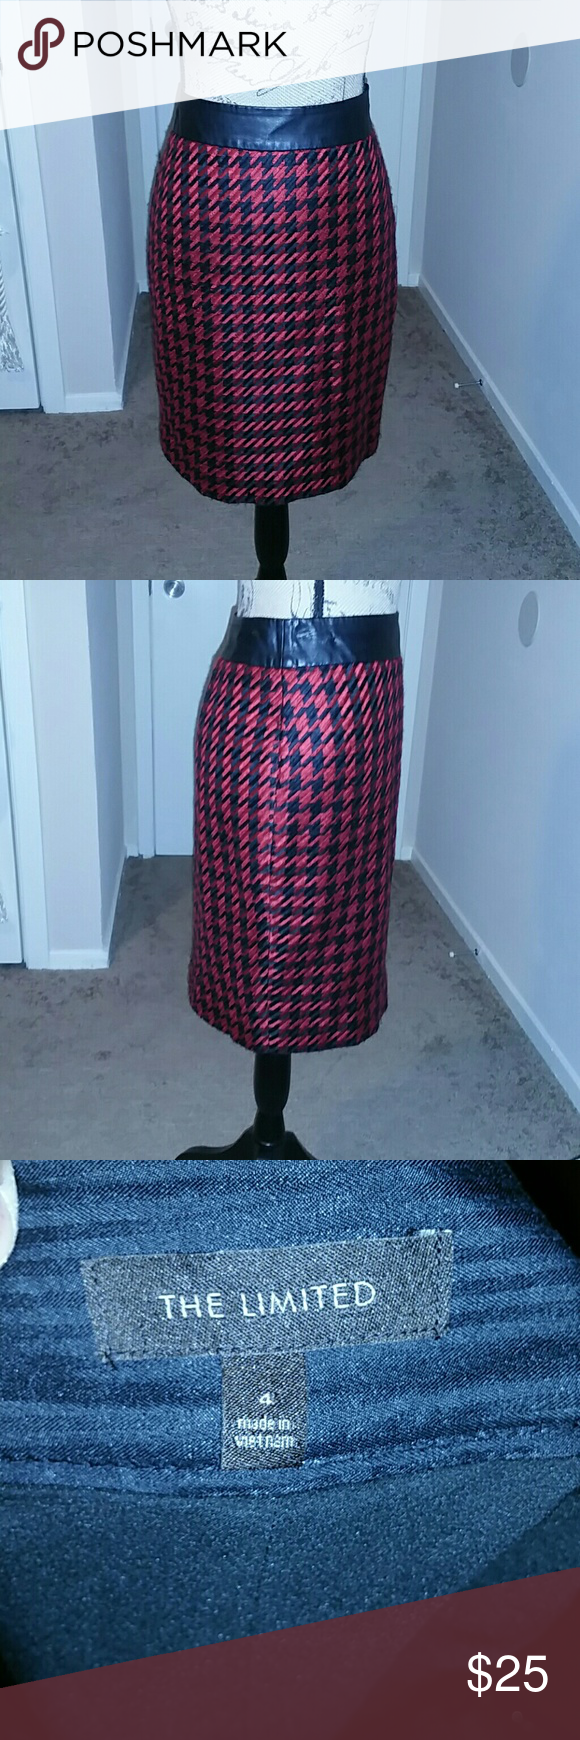 The Limited Skirt Houndstooth Style SMALL Beautiful skirt by The Limited. Red and Black Houndstooth design. Feux Black Leather around the wait. Measurements: 15 inches Waist, 21 inches Length. Pair it with a red sweater.  No stains or tears. ***Sweater sold separately*** The Limited Skirts Mini